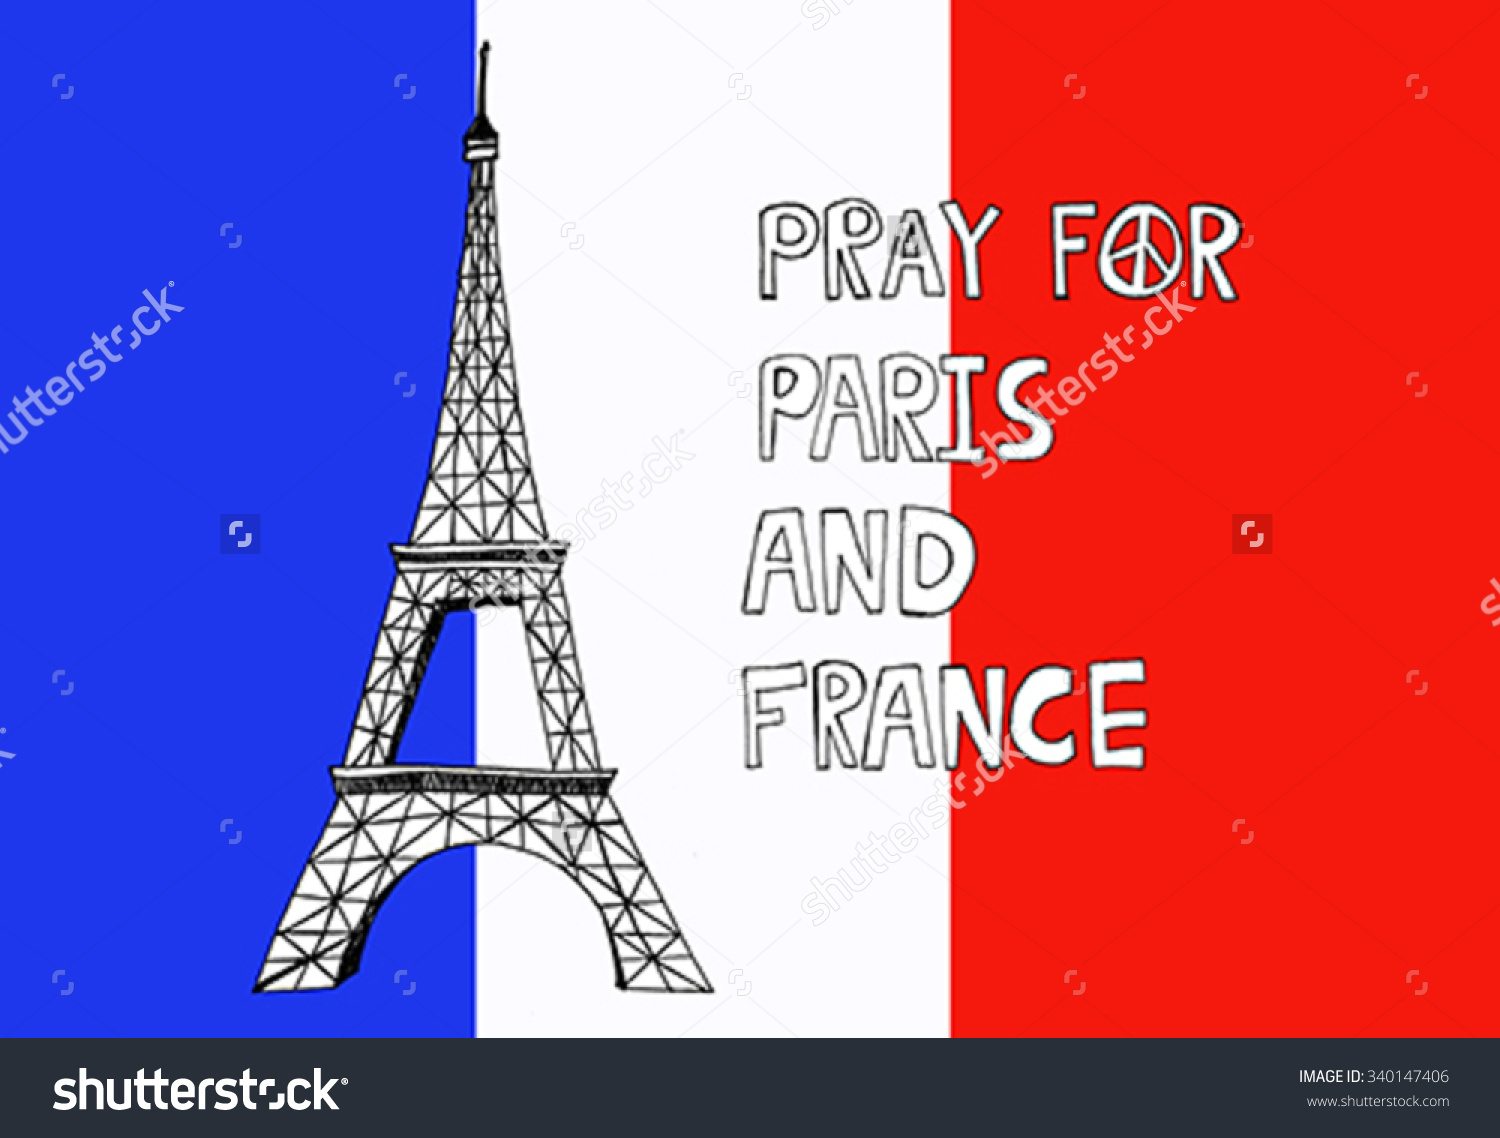 Pray For Paris With Eiffel Tower With. Tribute To Victims Of.